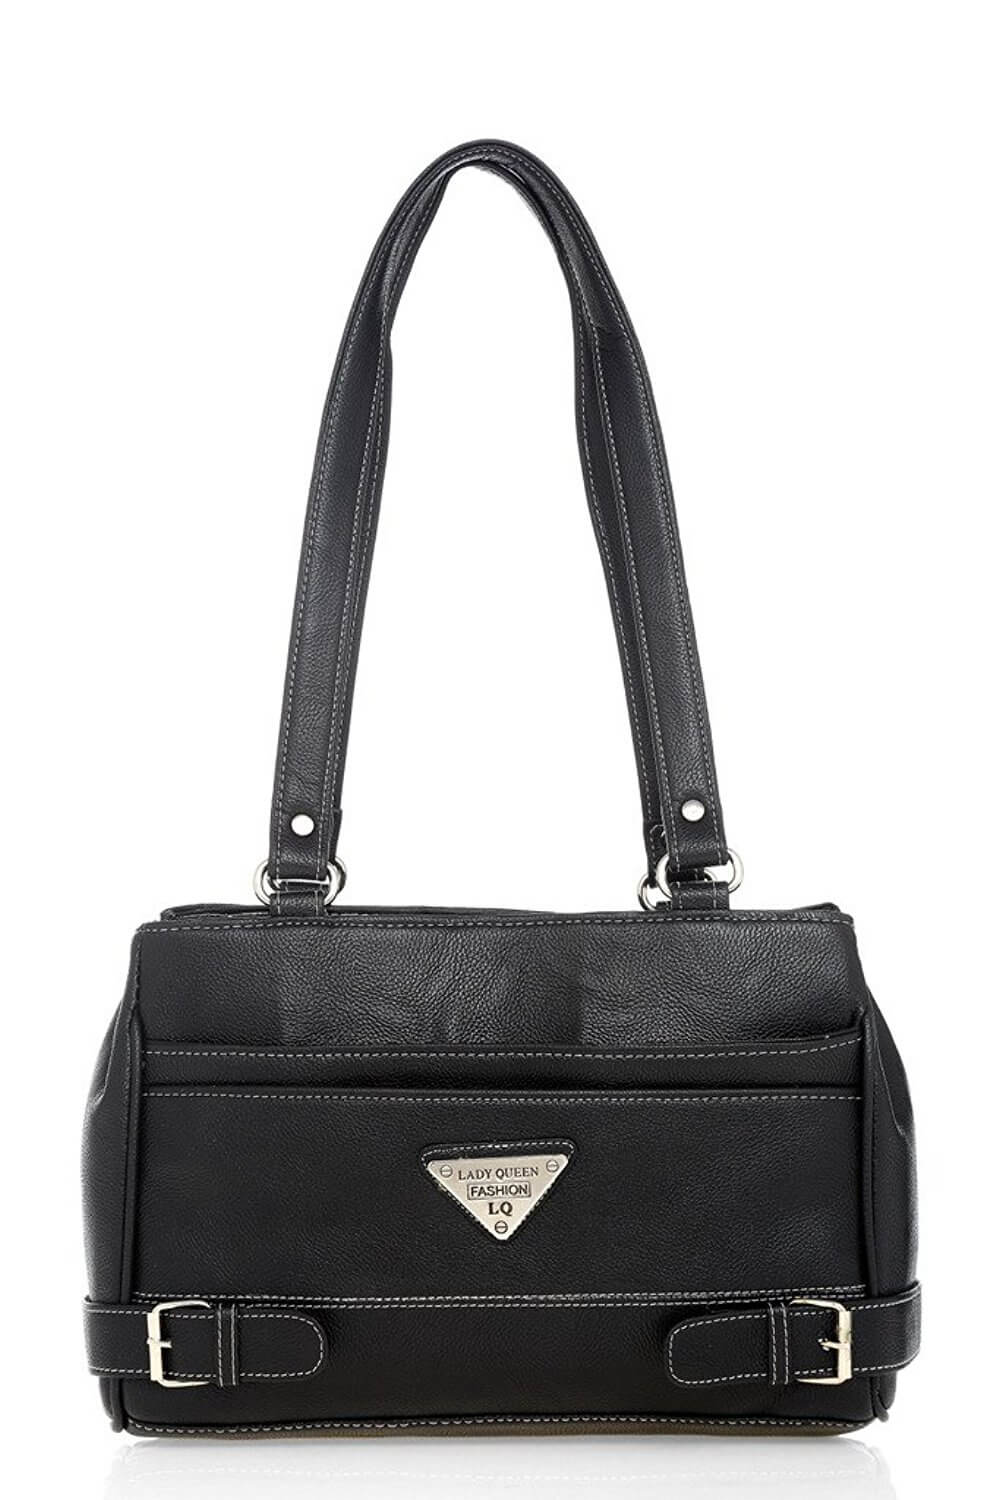 Lady queen casual bag LD - 366